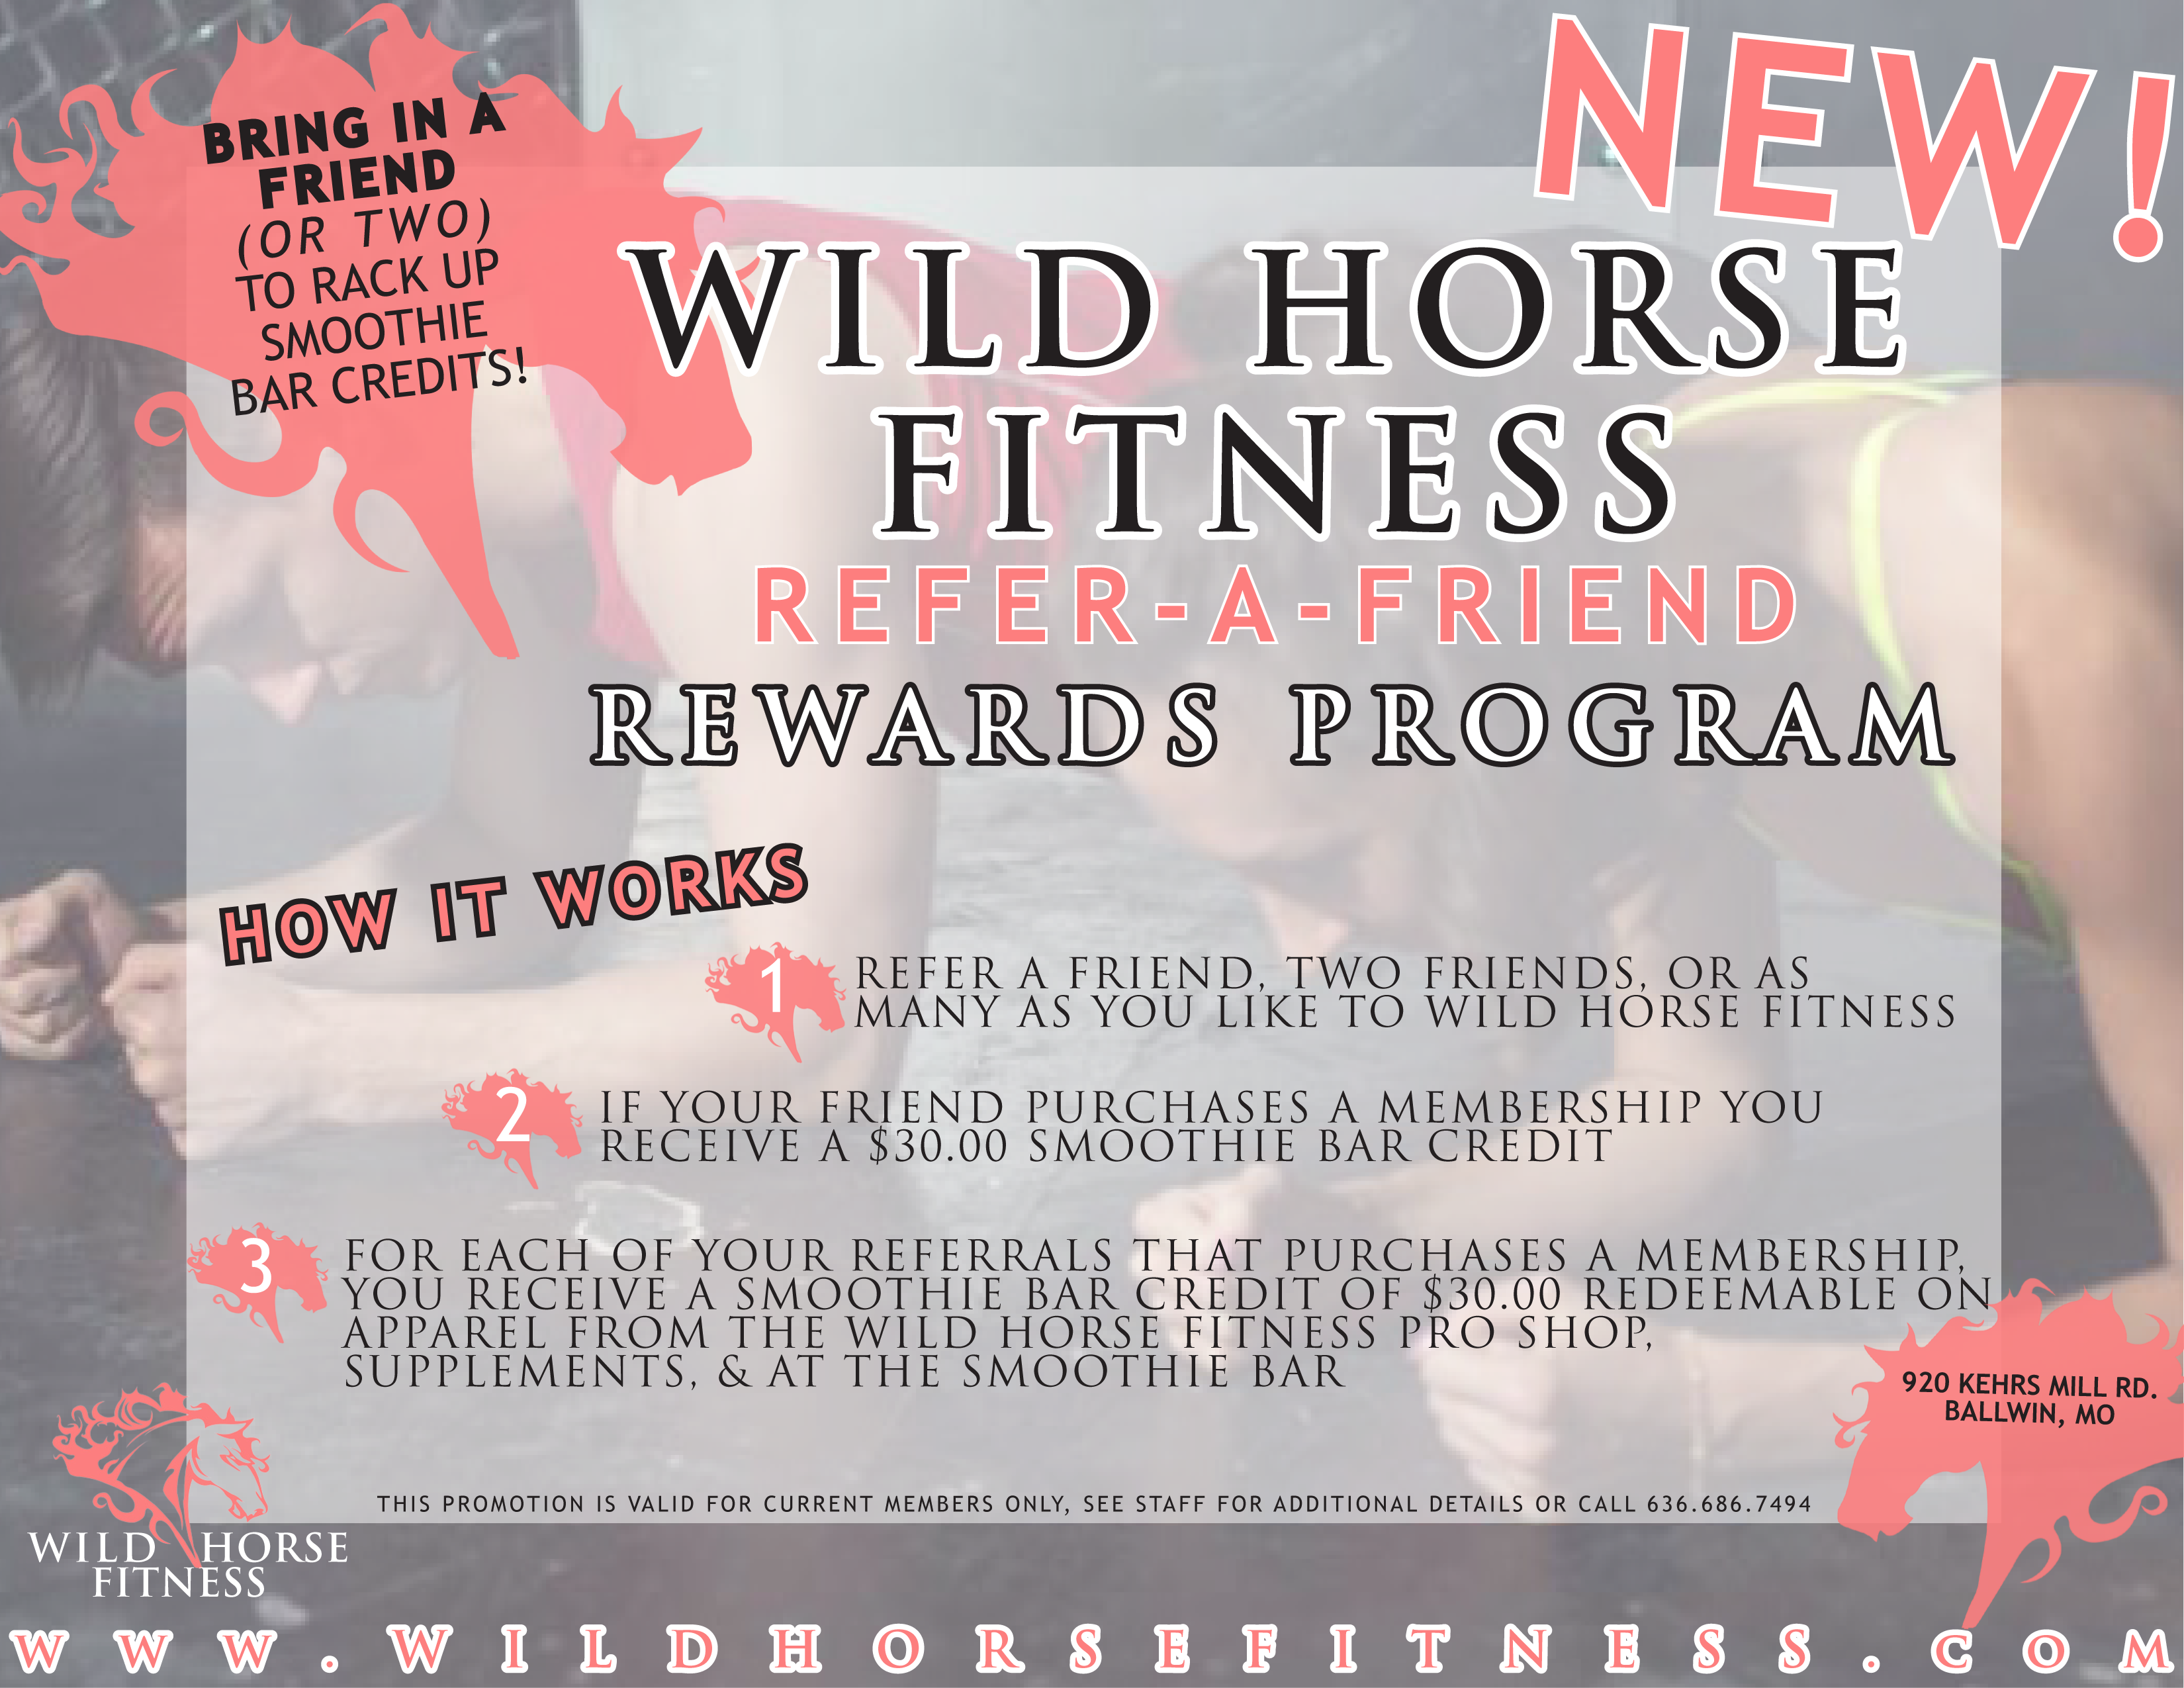 How To Get Smoothie Bar Credits At Wild Horse Fitness Wild Horse Fitness Ballwin Nearsay